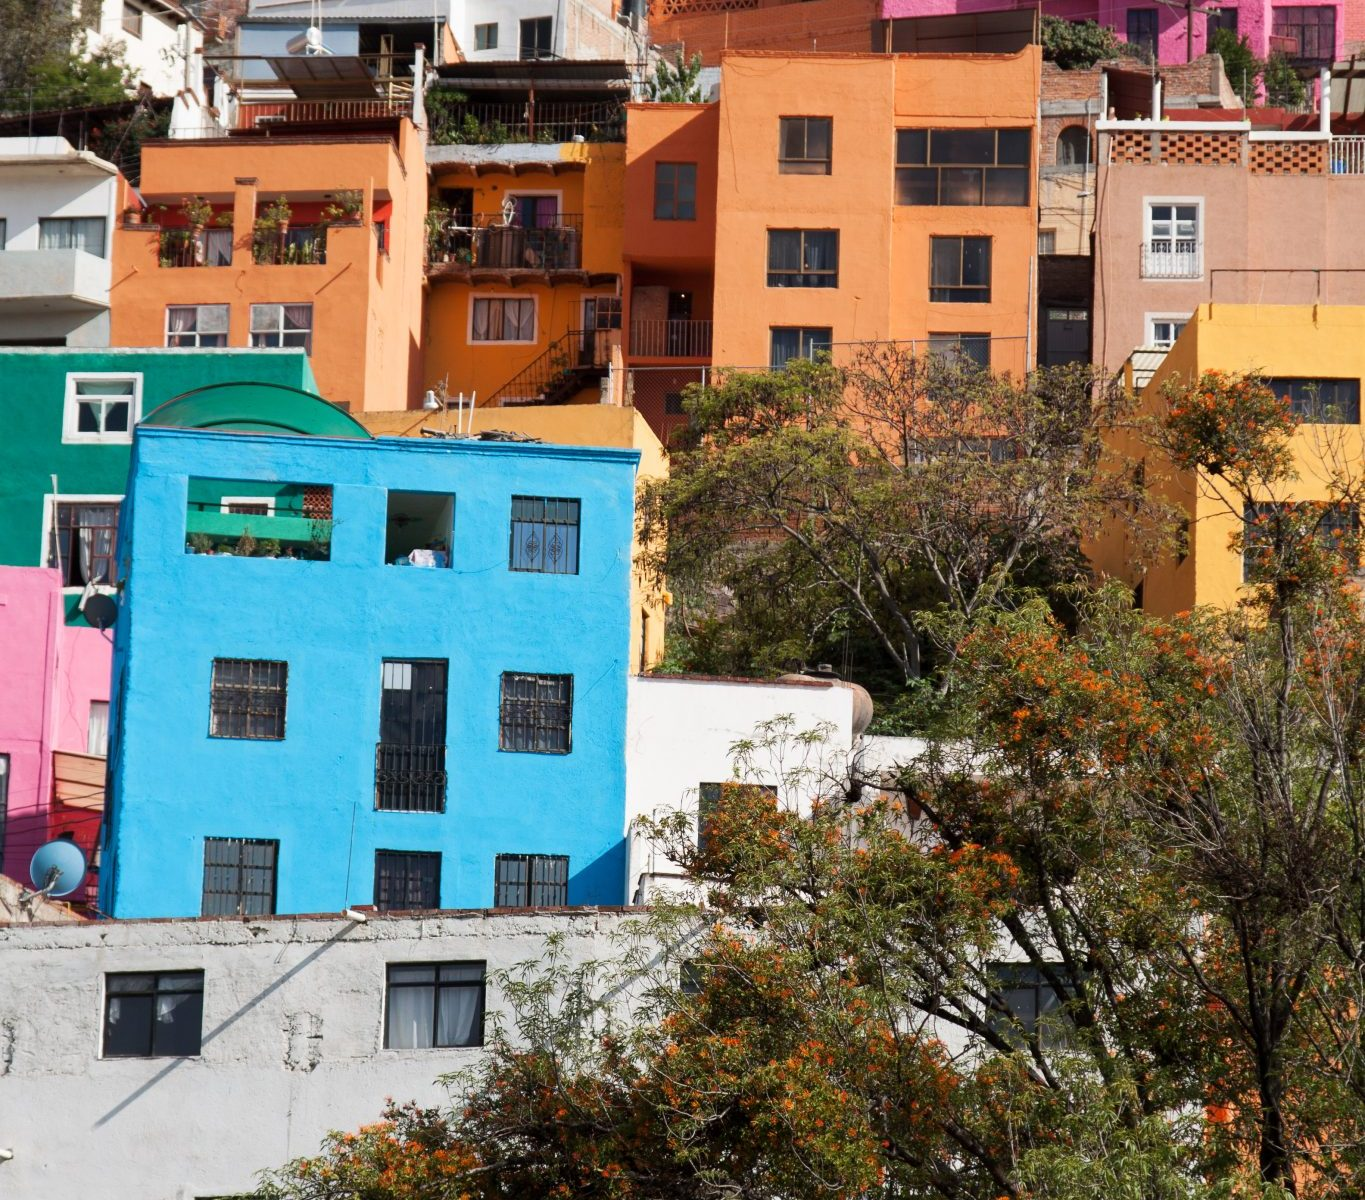 Colorful hilltop buildings in Guanajuato Mexico